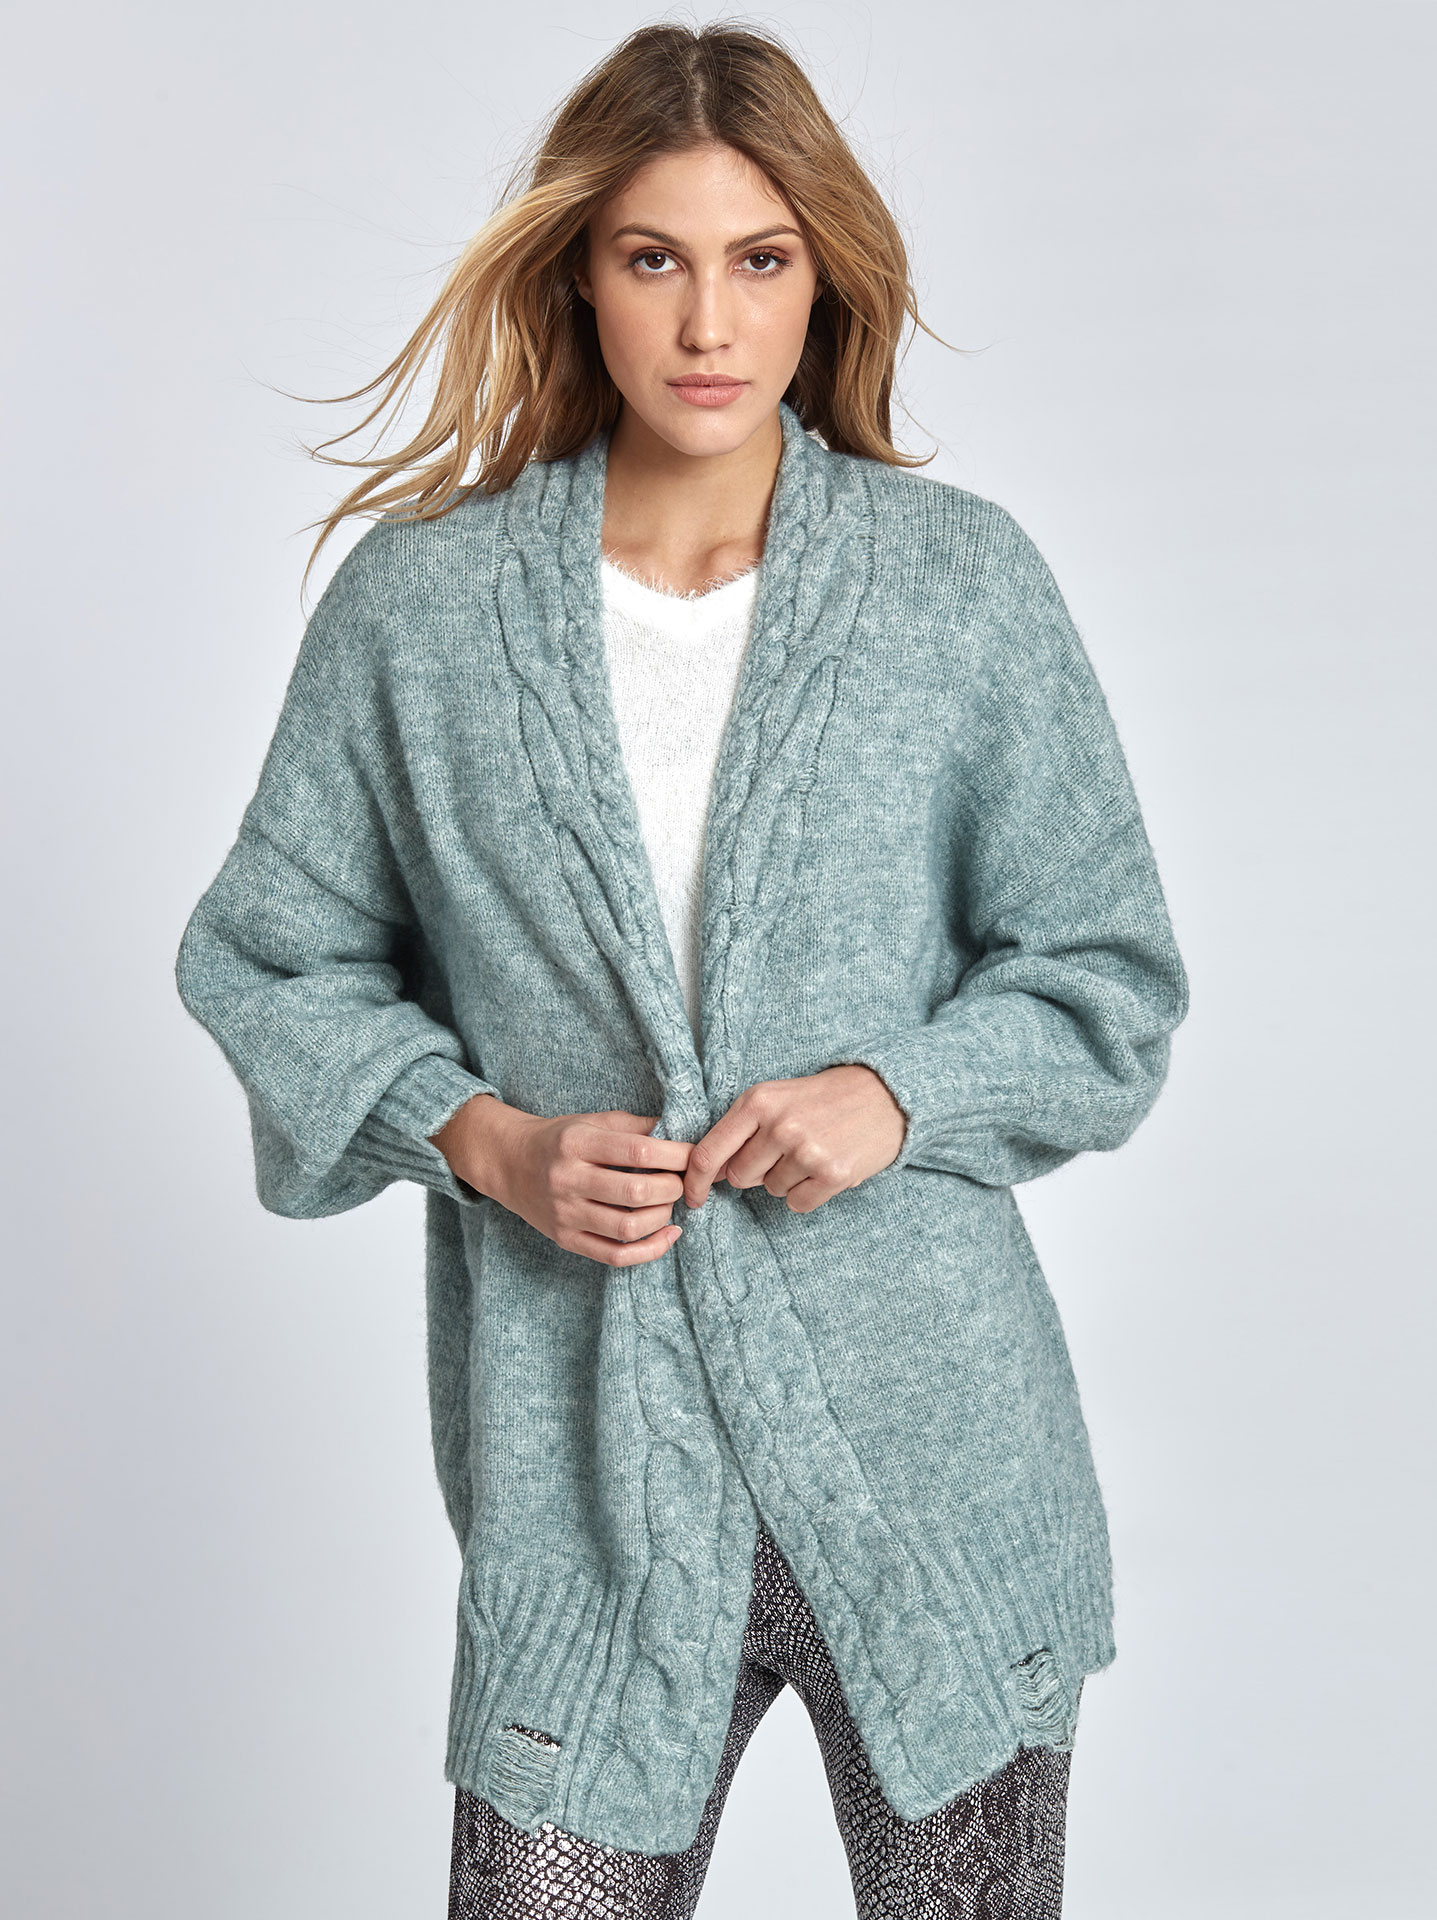 a74150b249 Oversized knitted cardigan in aquamarine